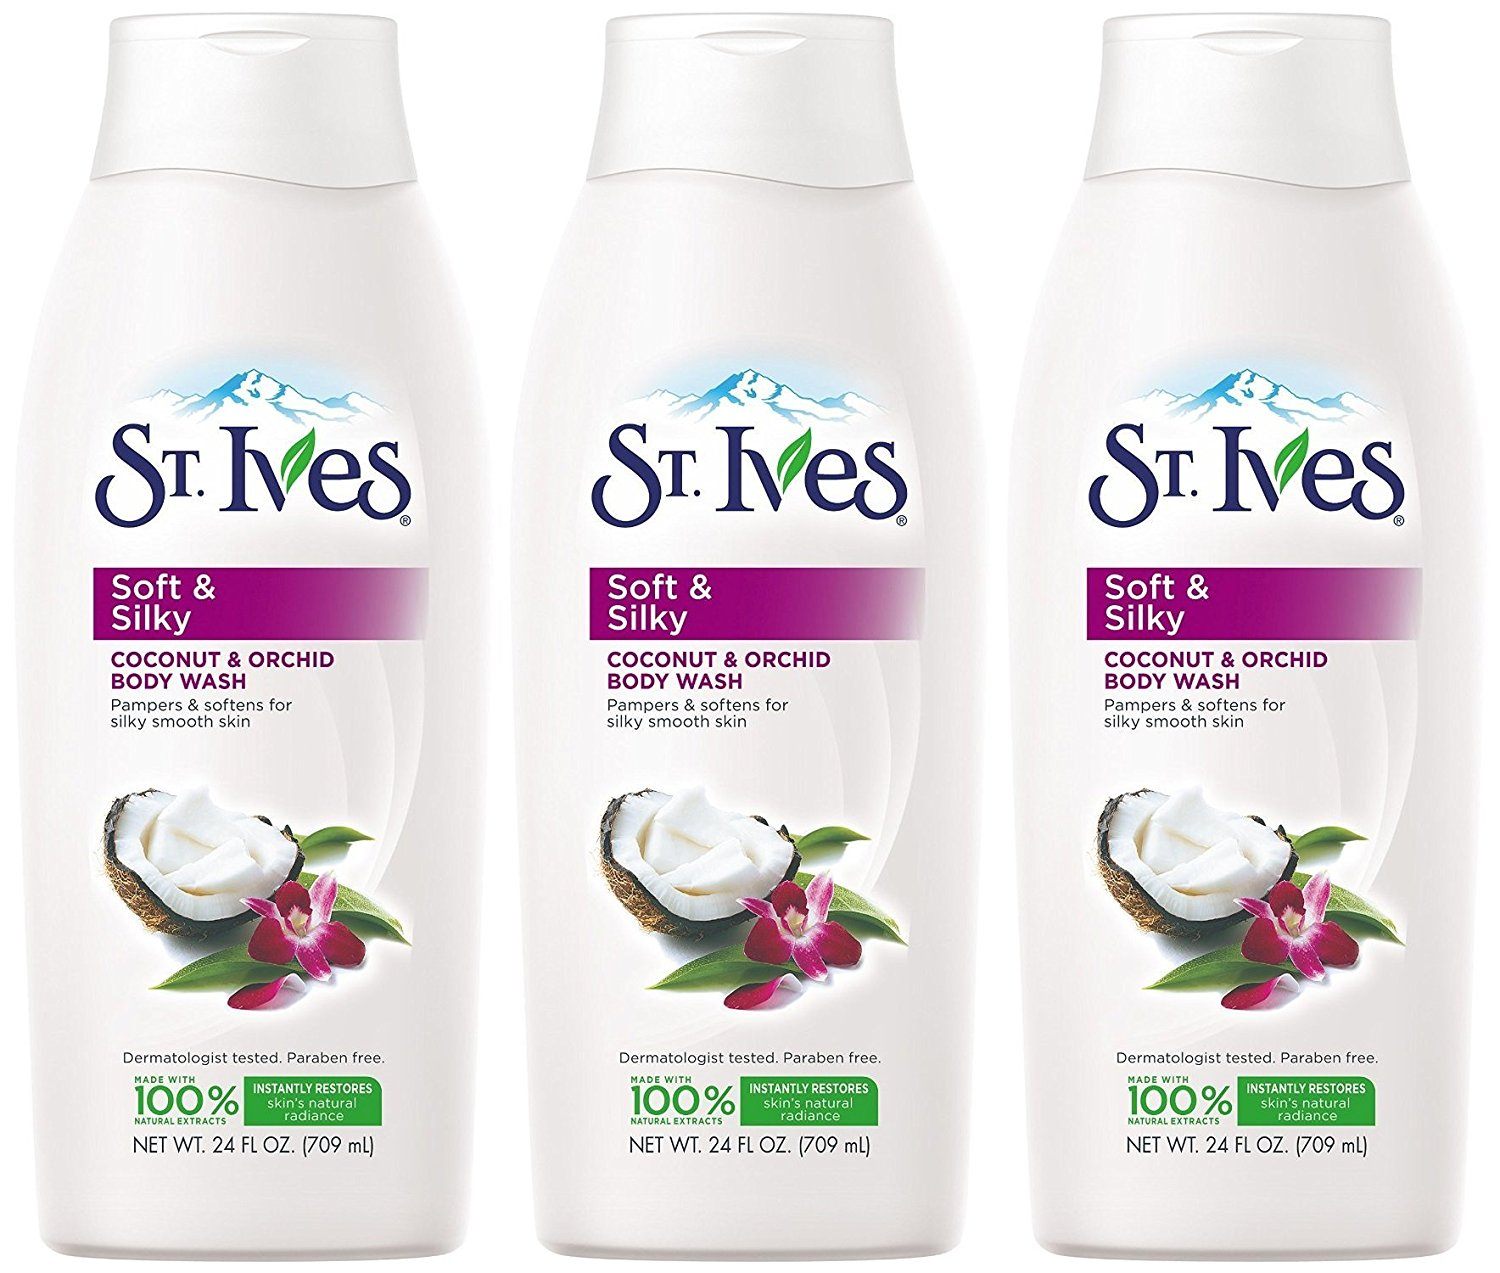 Cheap St Ives Body Wash Find Deals On Line At Oatmeal Ampamp Shea Butter 400ml Get Quotations Soft And Silky Coconut Orchid 24 Oz Pack